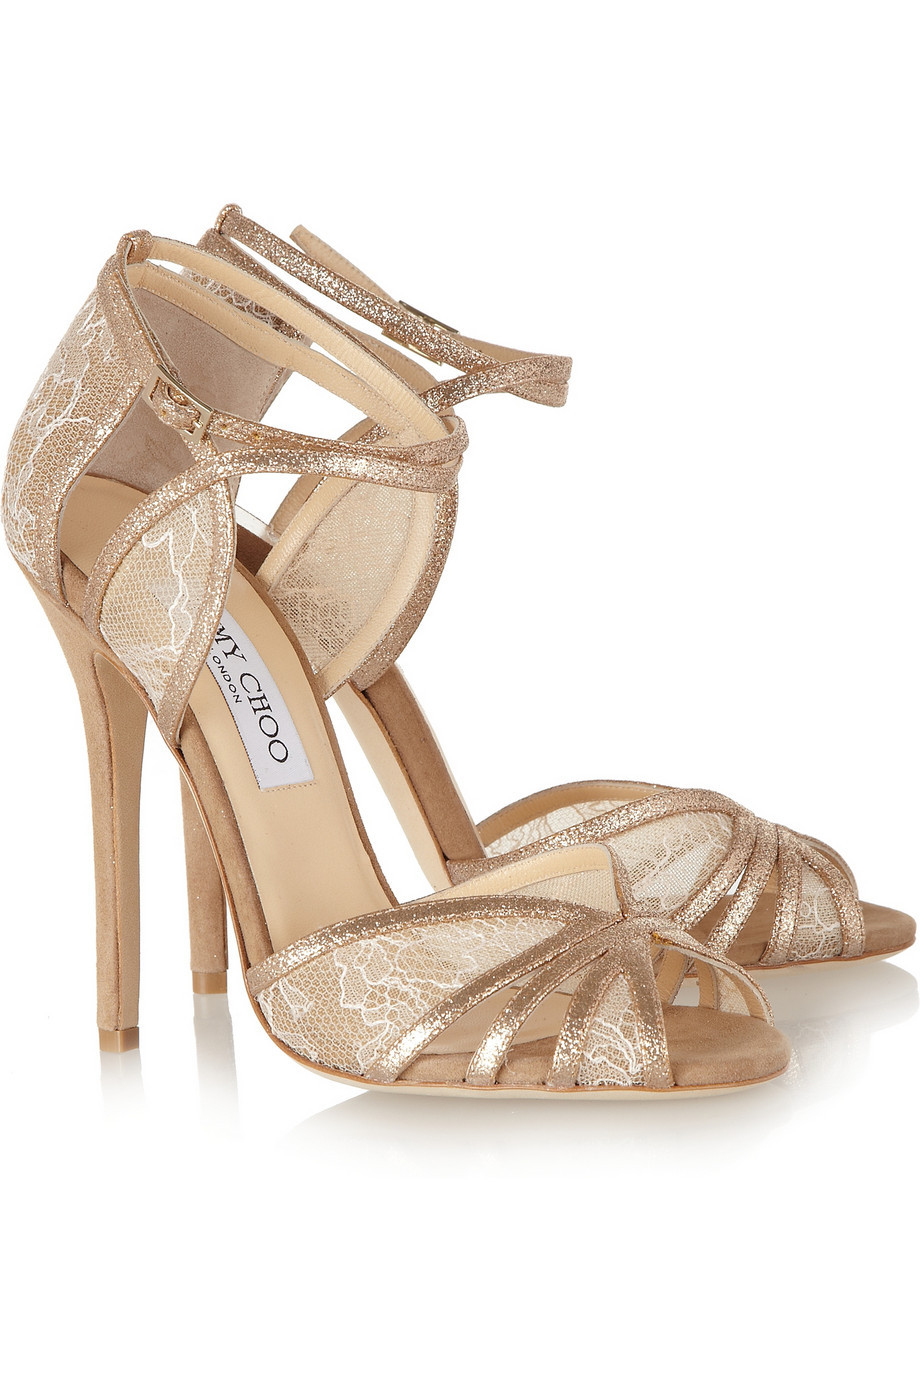 Copper Nude Lace Suede Wedding Shoes Onewed Com